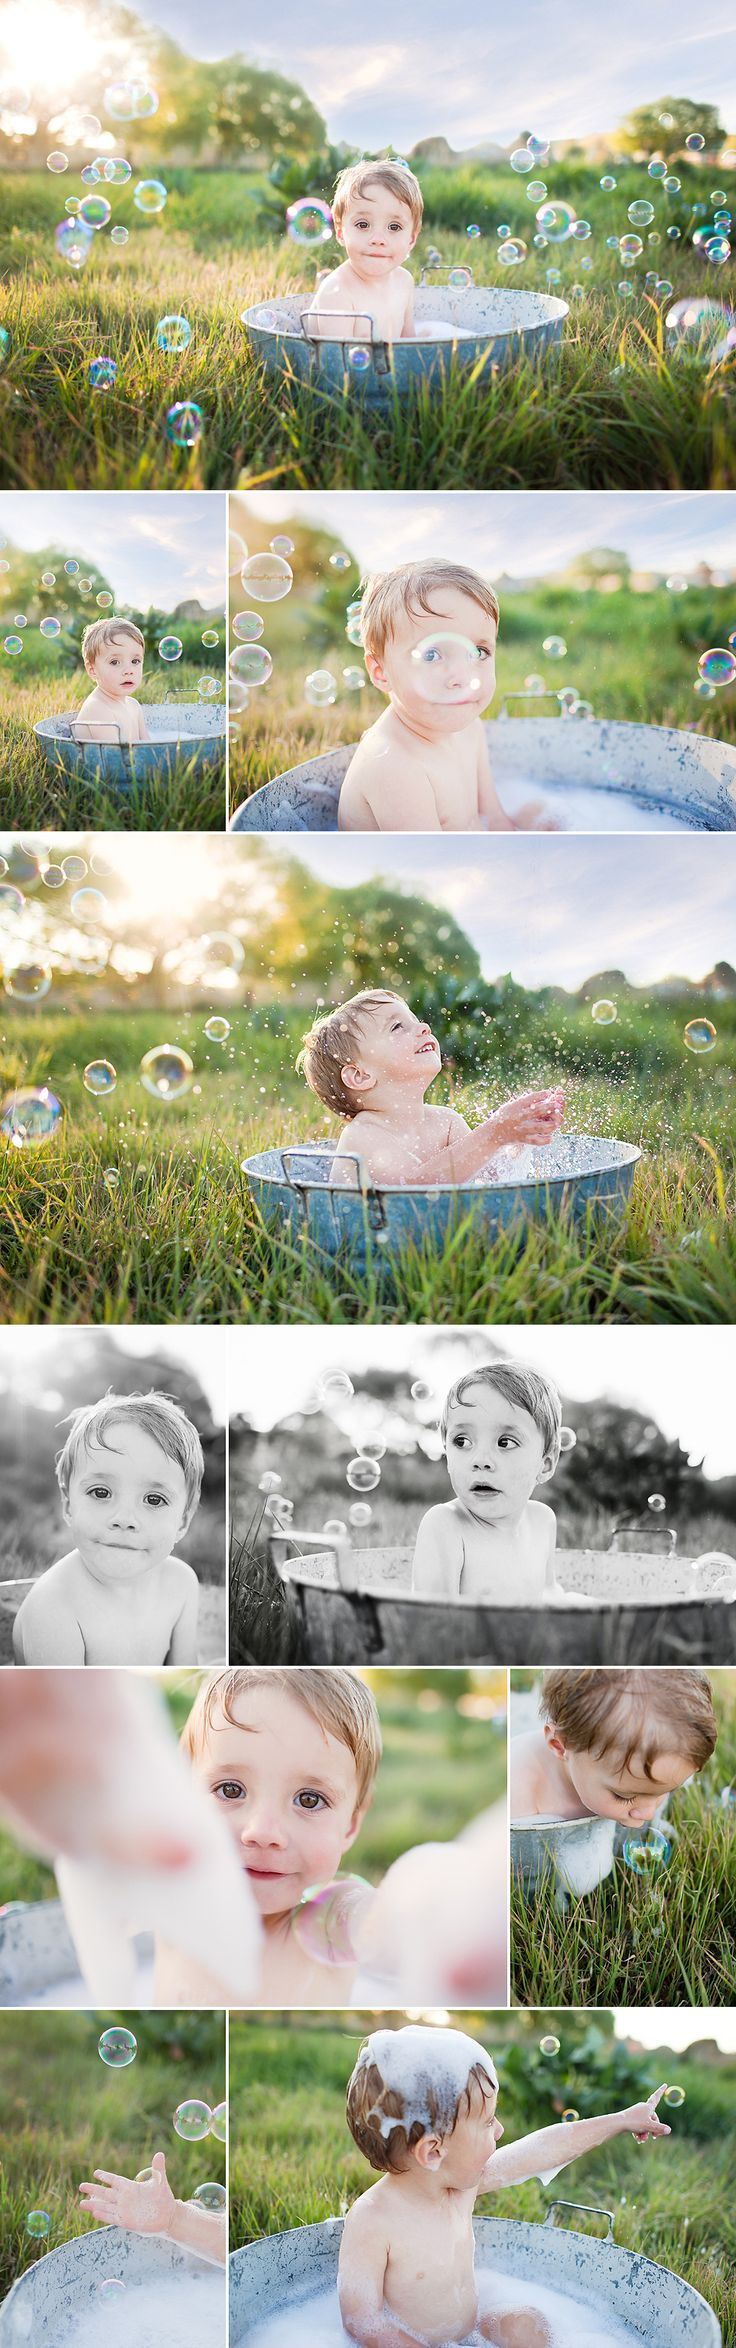 cute bubble bath photos, i just love this